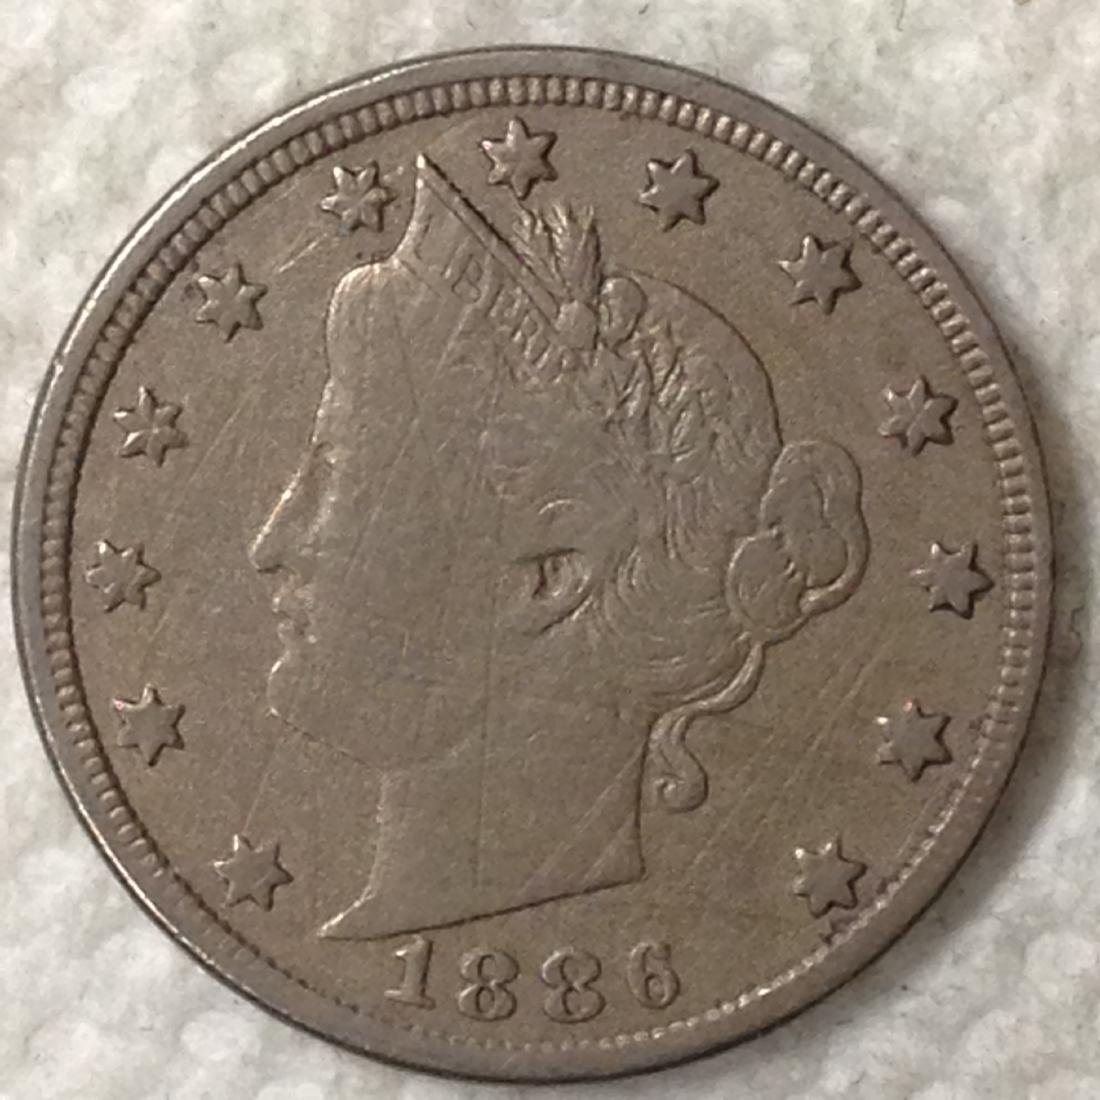 1886 5C VF DETAIL SHARP DETAIL BUT SCRATCHES. KEY DATE